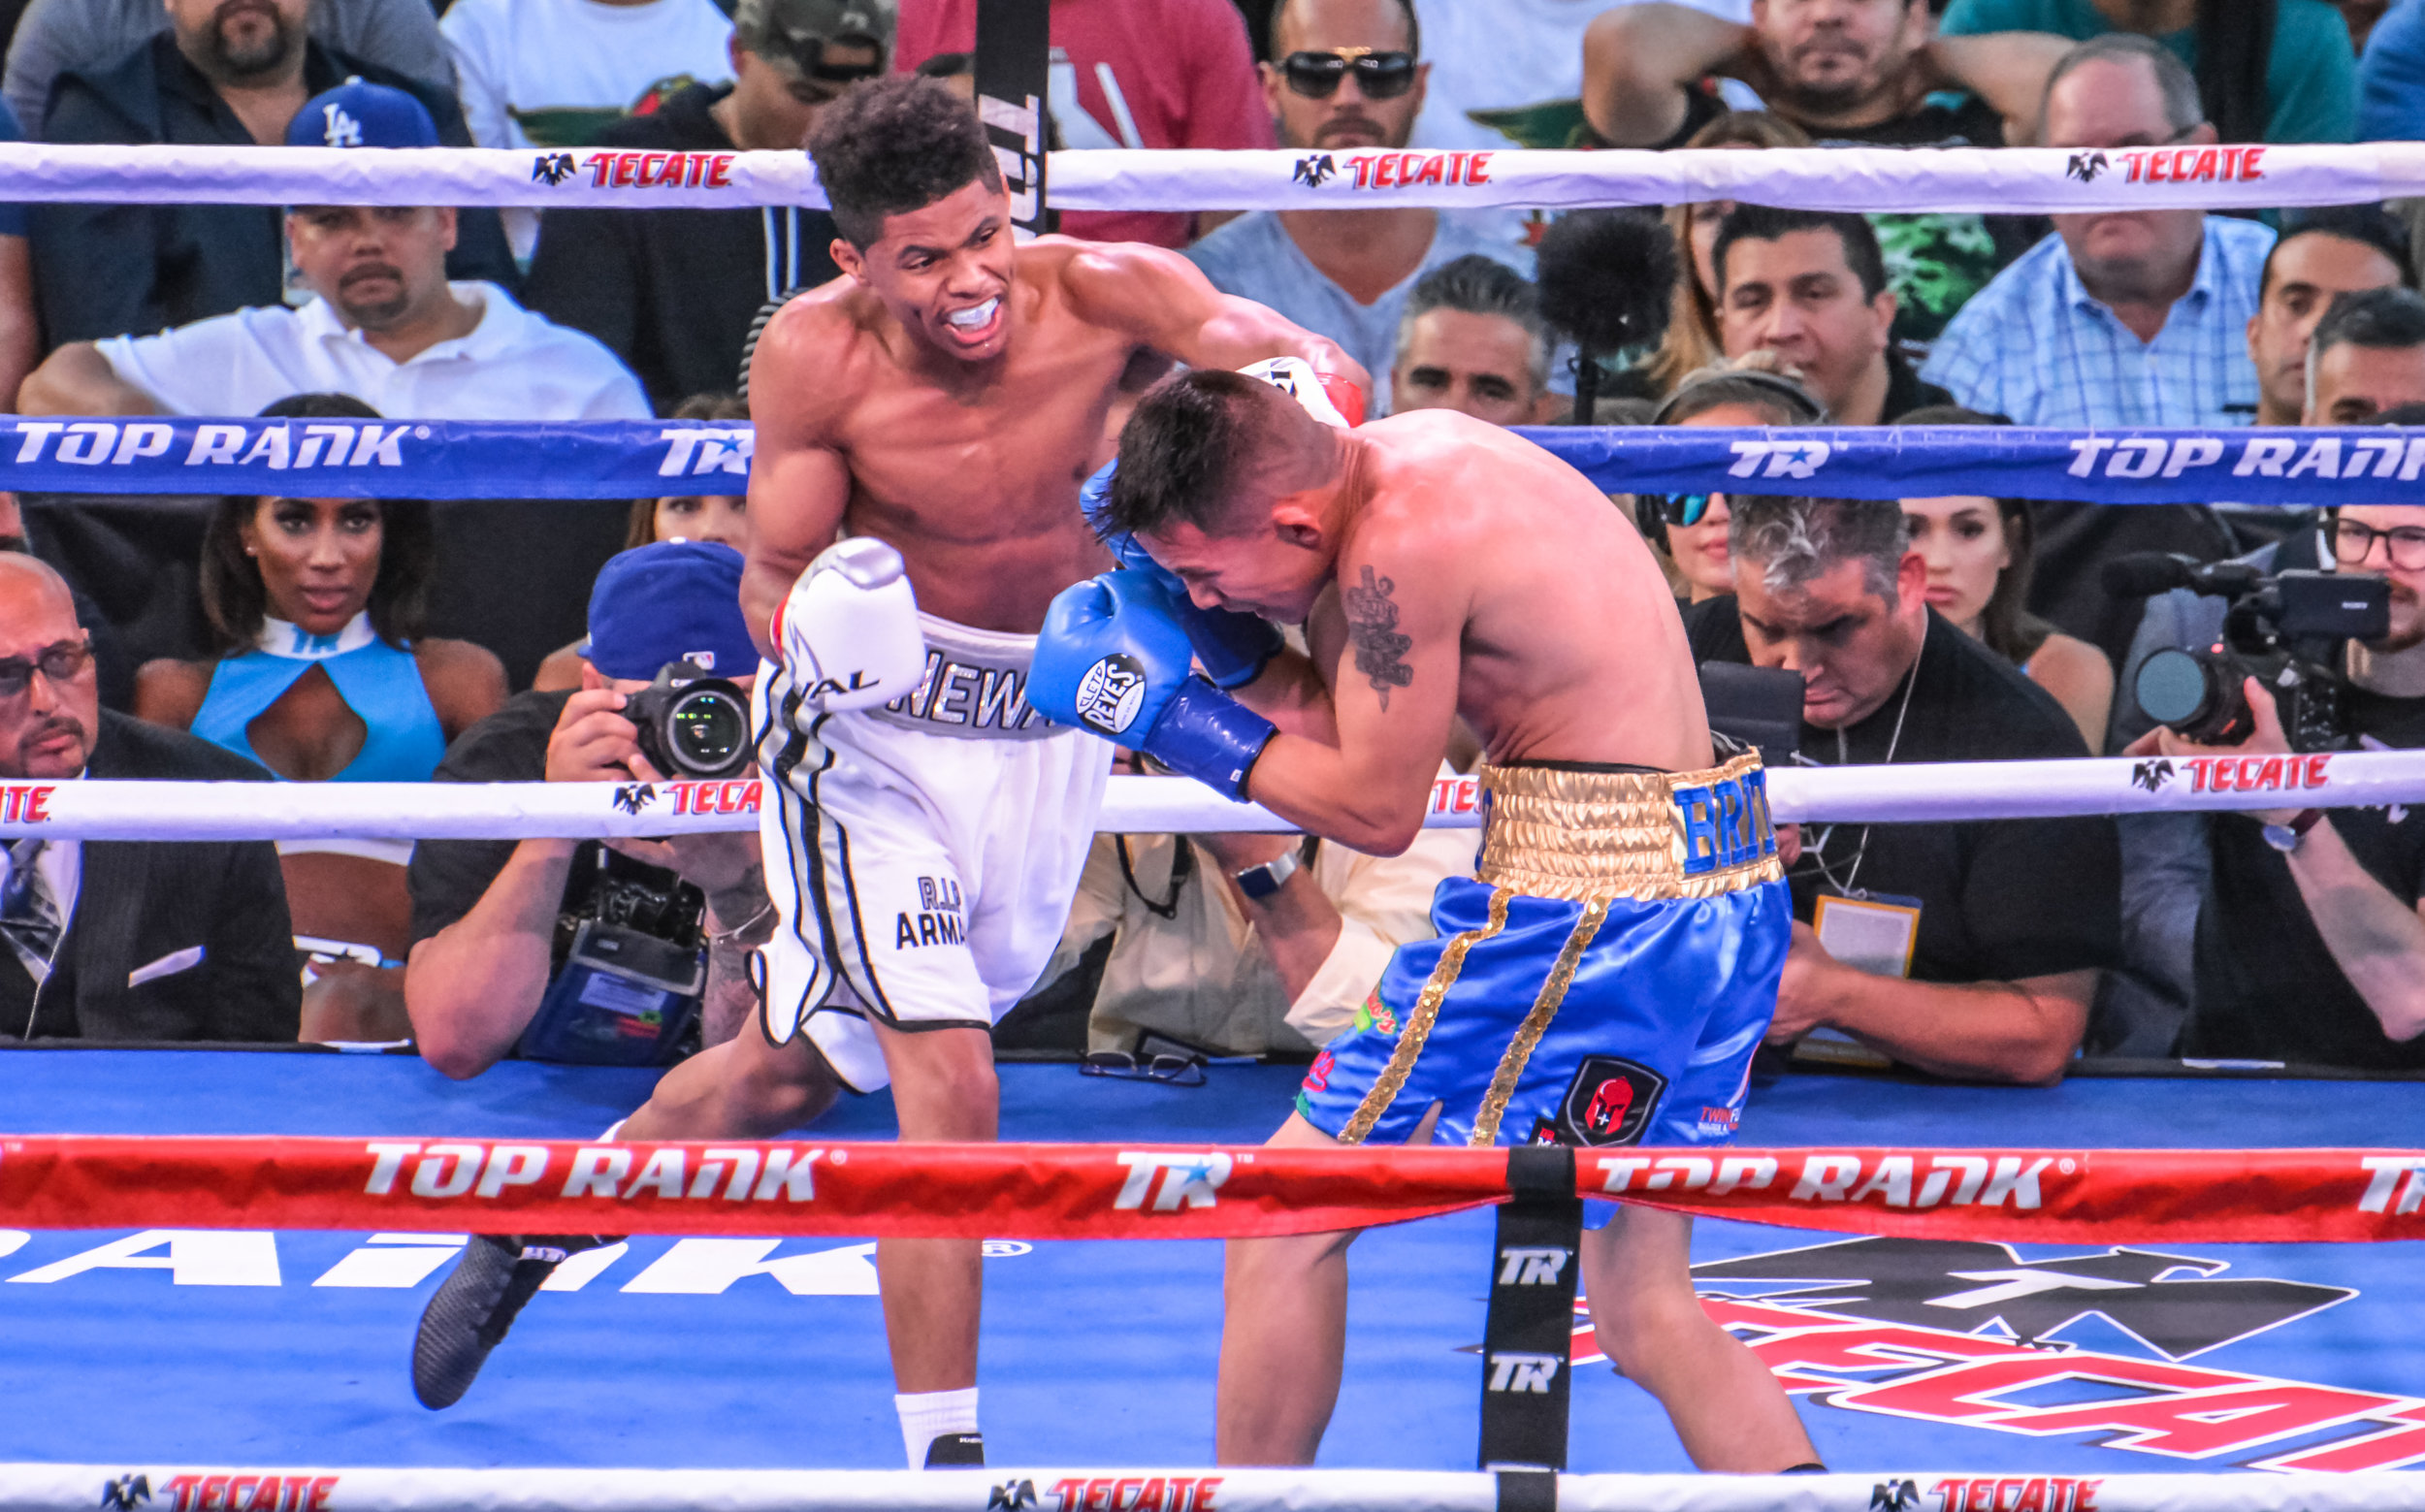 Shakur Stenson wins his pro debut against tough Edgar Brito. Photo credit: Cythina Saldaña/Frontproof Media